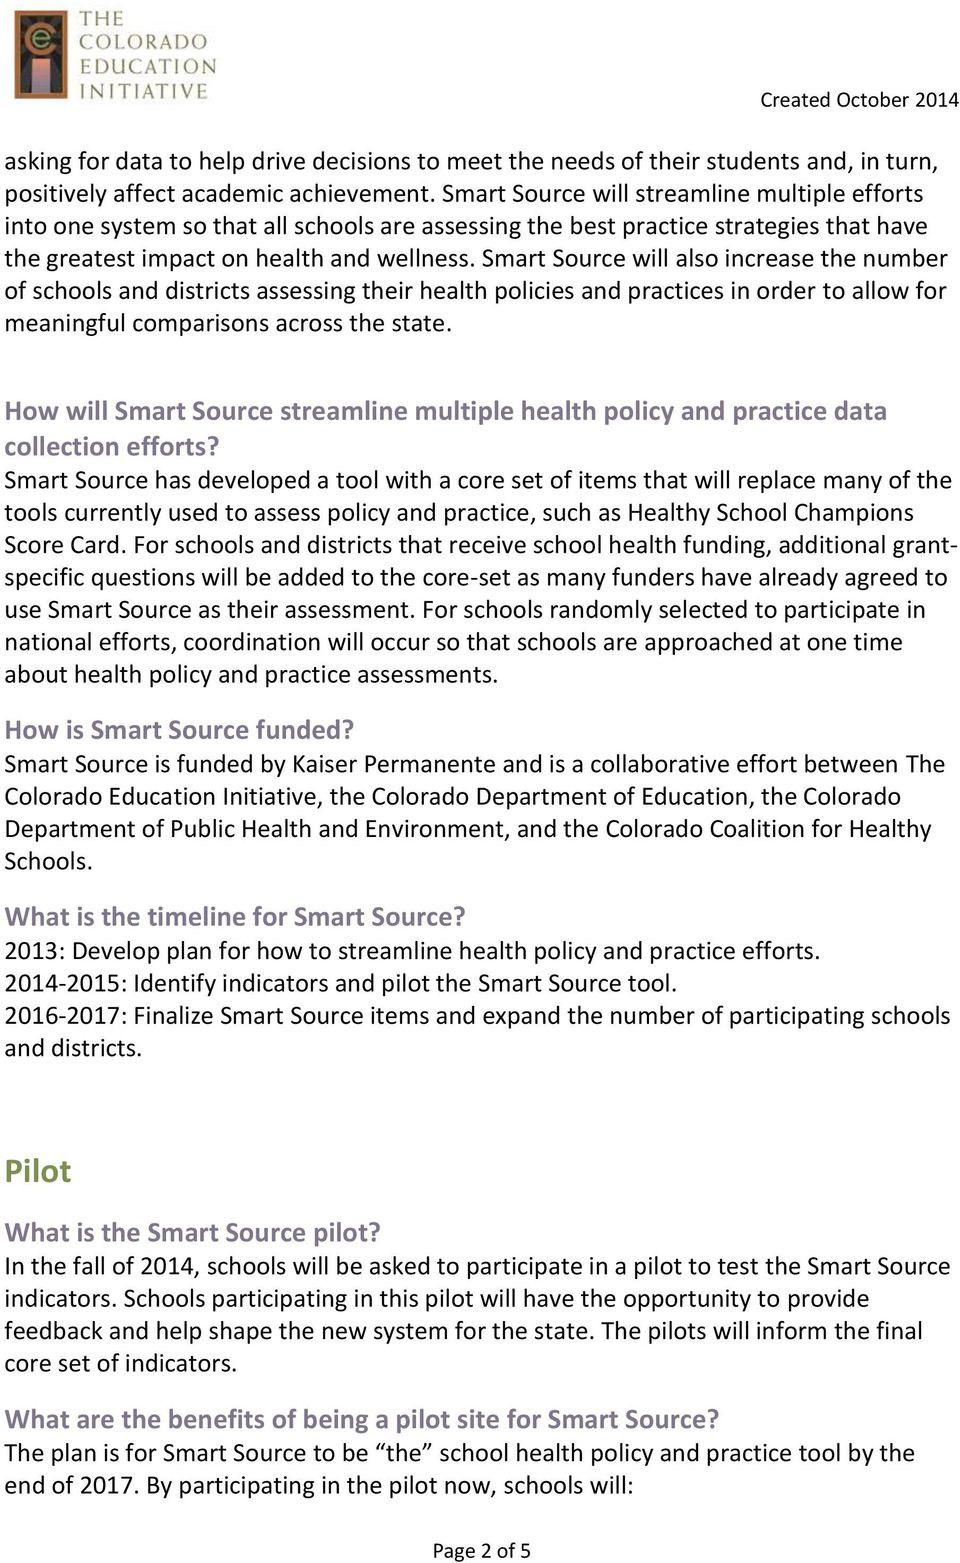 Smart Source will also increase the number of schools and districts assessing their health policies and practices in order to allow for meaningful comparisons across the state.